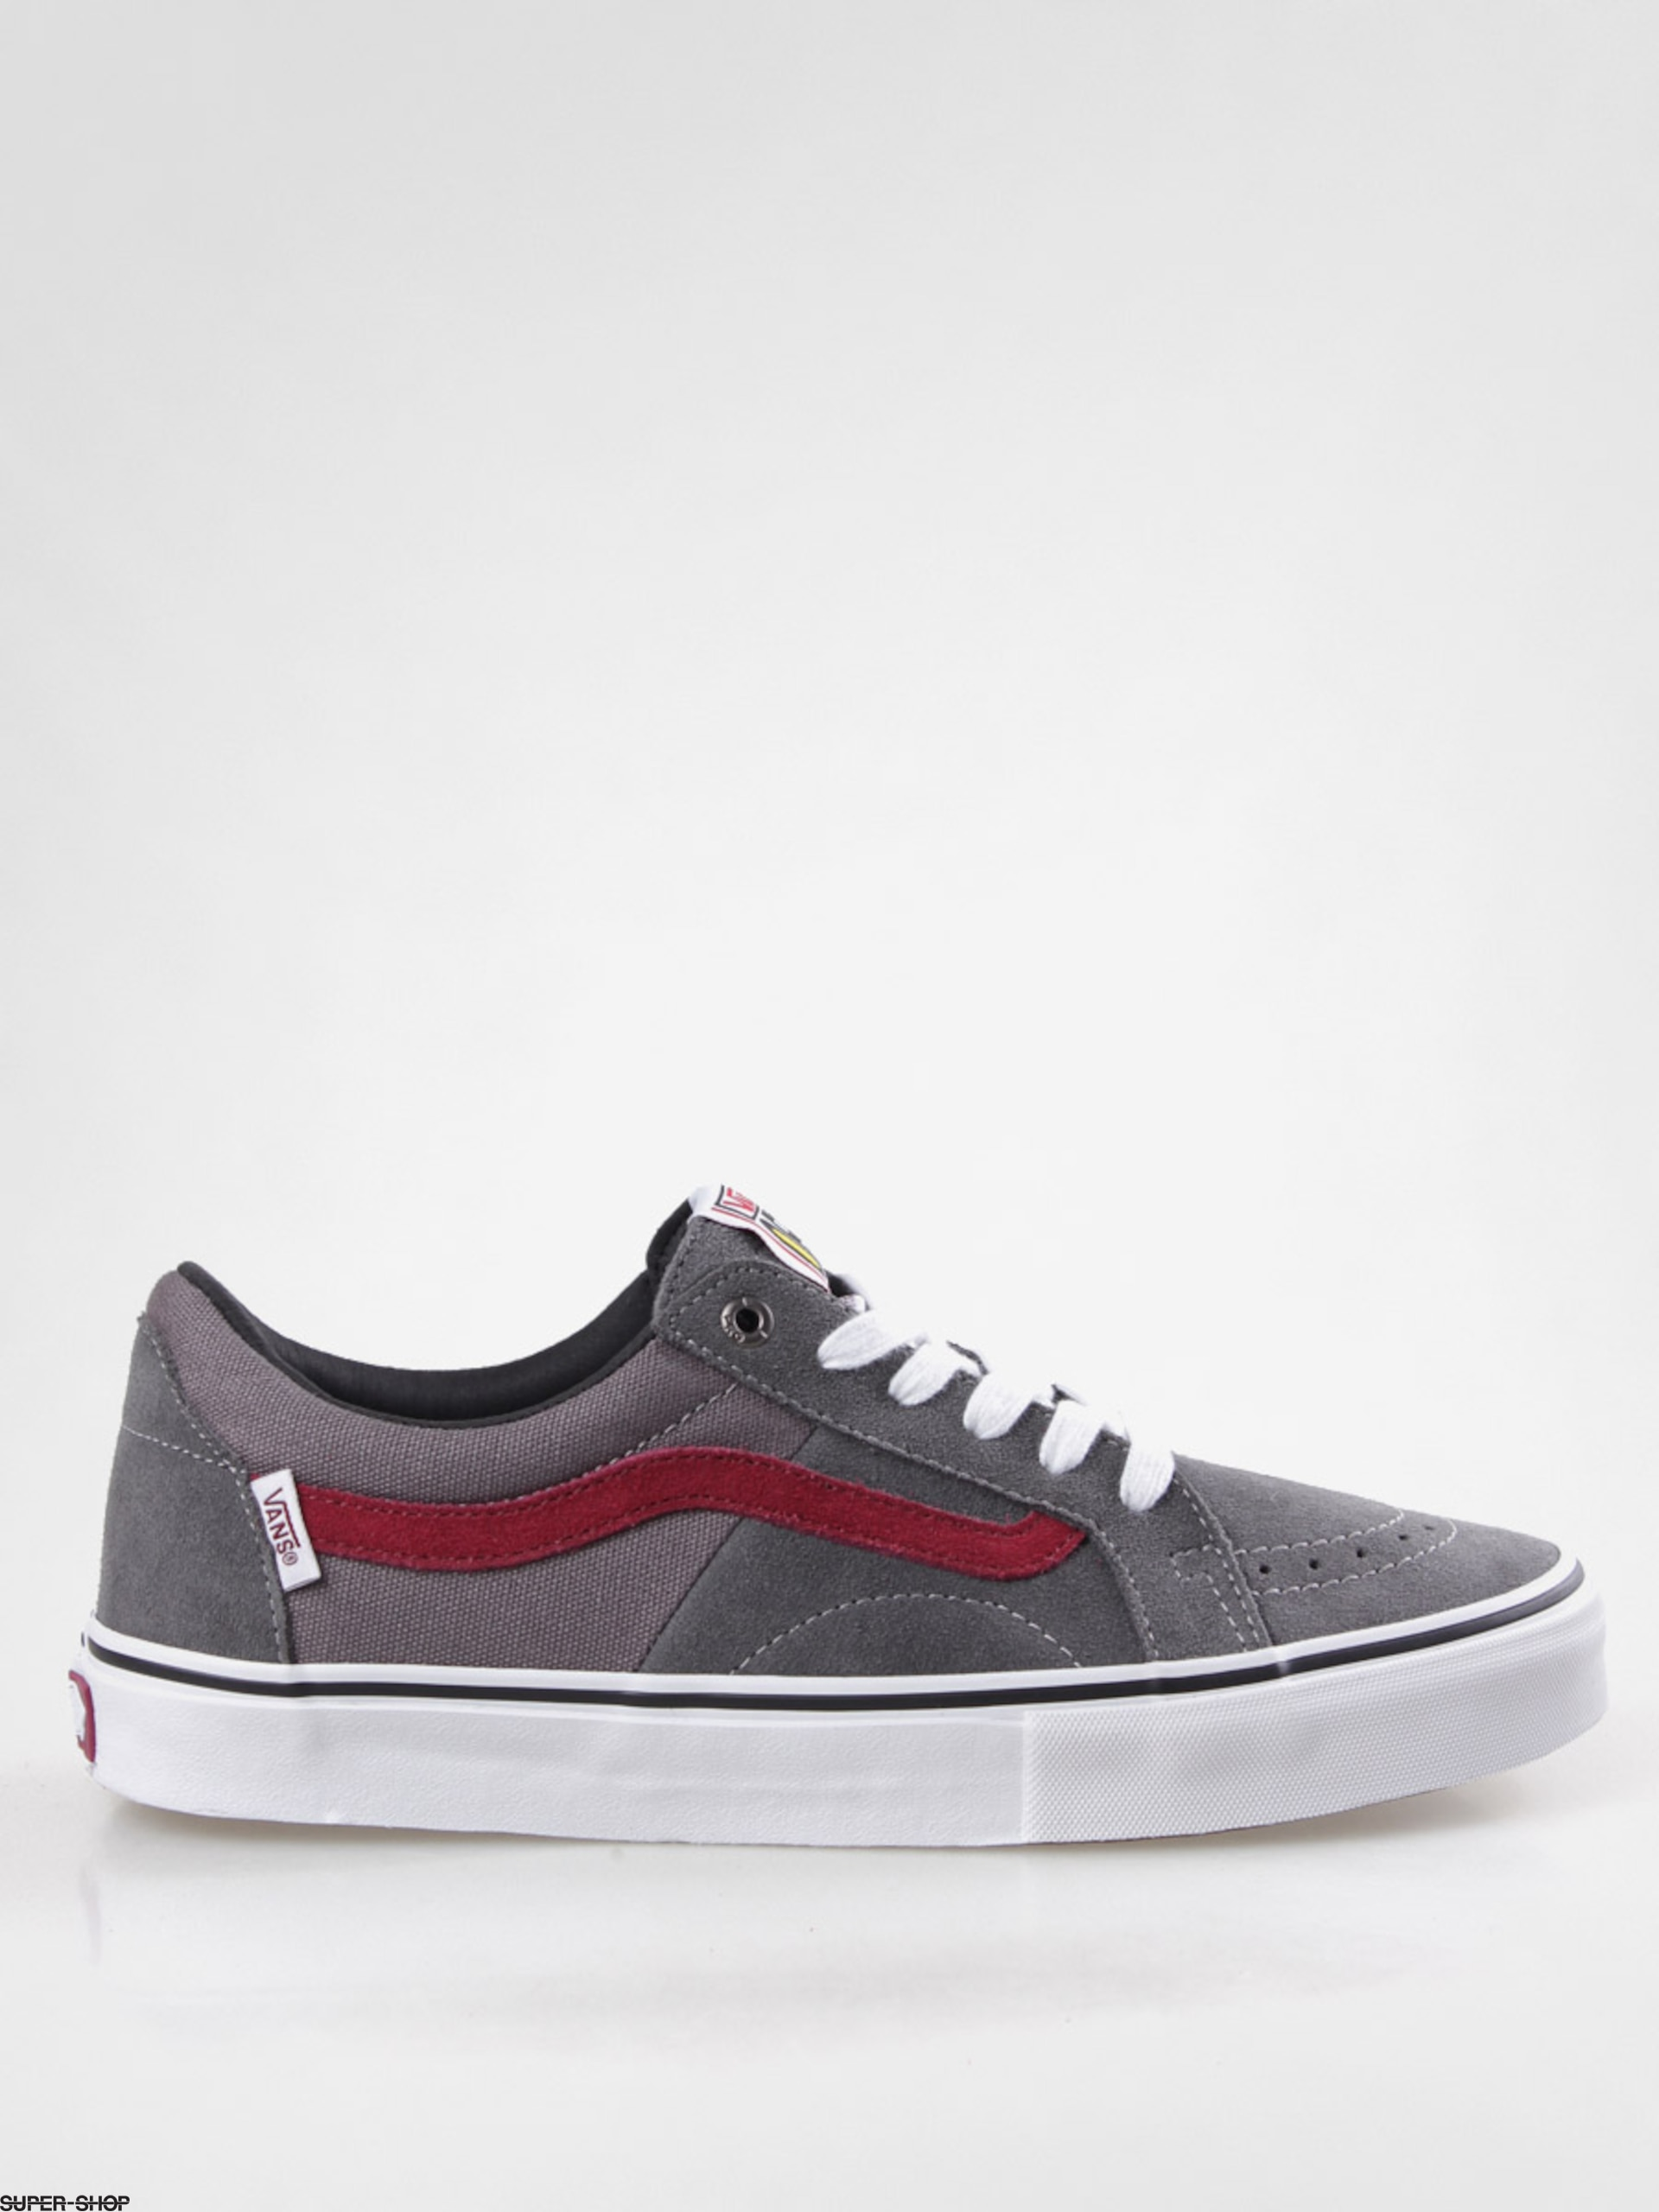 Vans shoes AV Native American Low VQEXCHB (charcoal burgundy) db8513a57